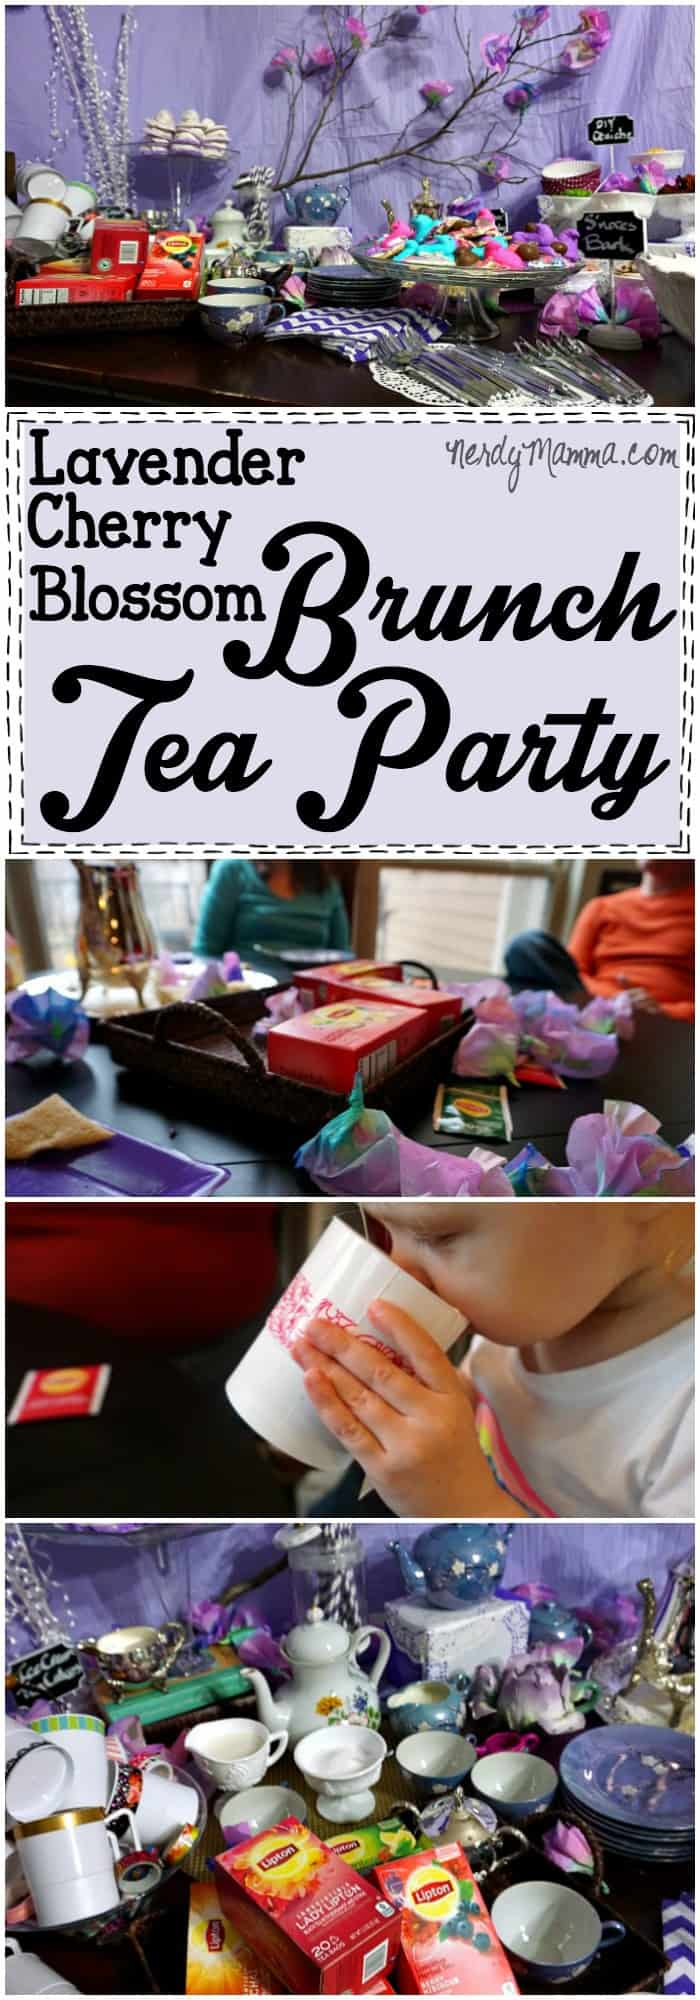 This Lavender Cherry Blossom Brunch Tea Party is SO PRETTY. I love all the purple and the DIY Quiche Bar is brilliant!